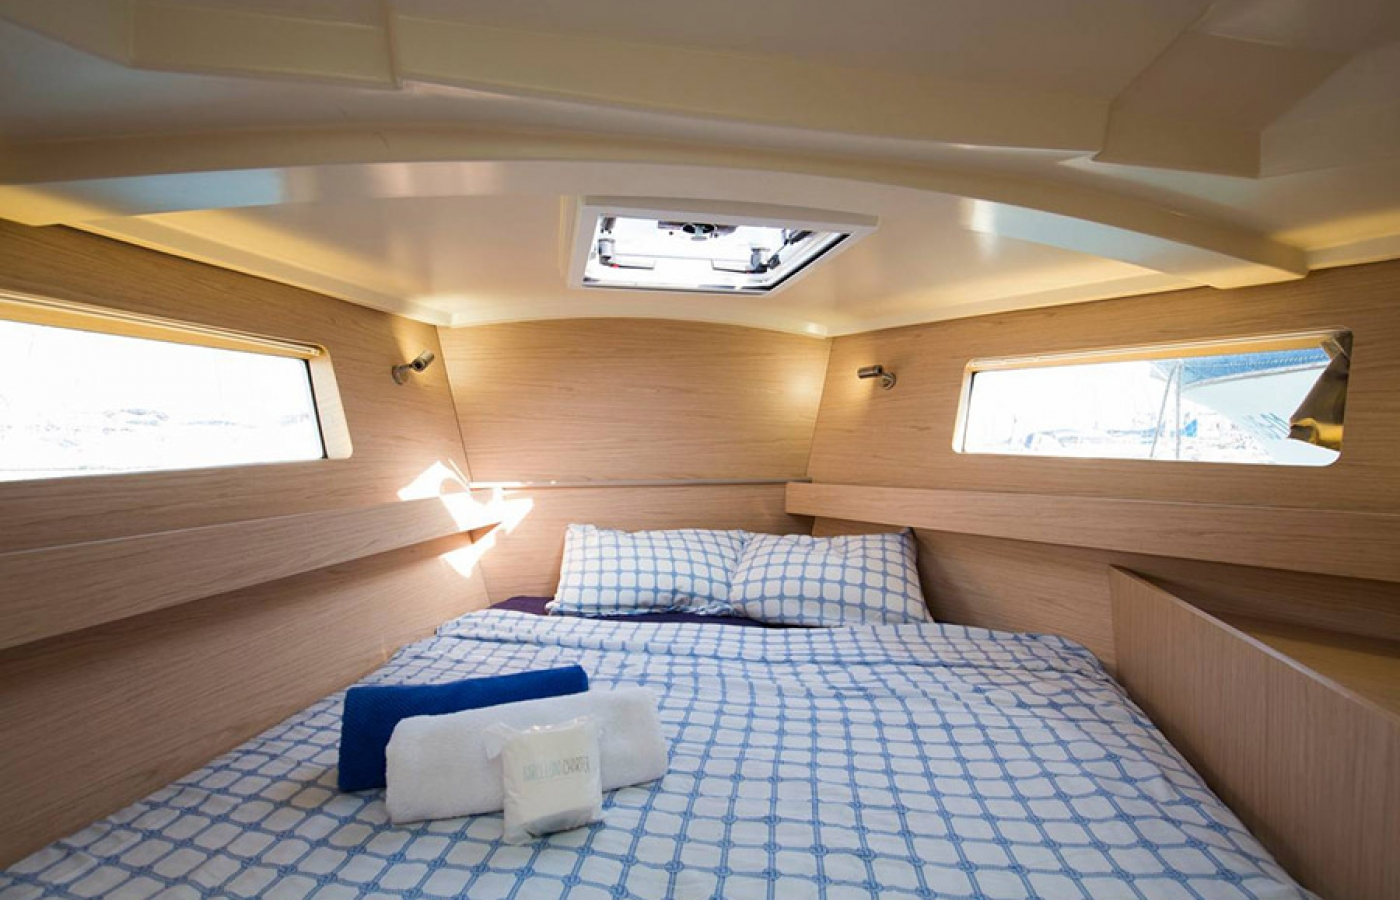 Beautiful interior inside double cabin with large windows for natural lighting